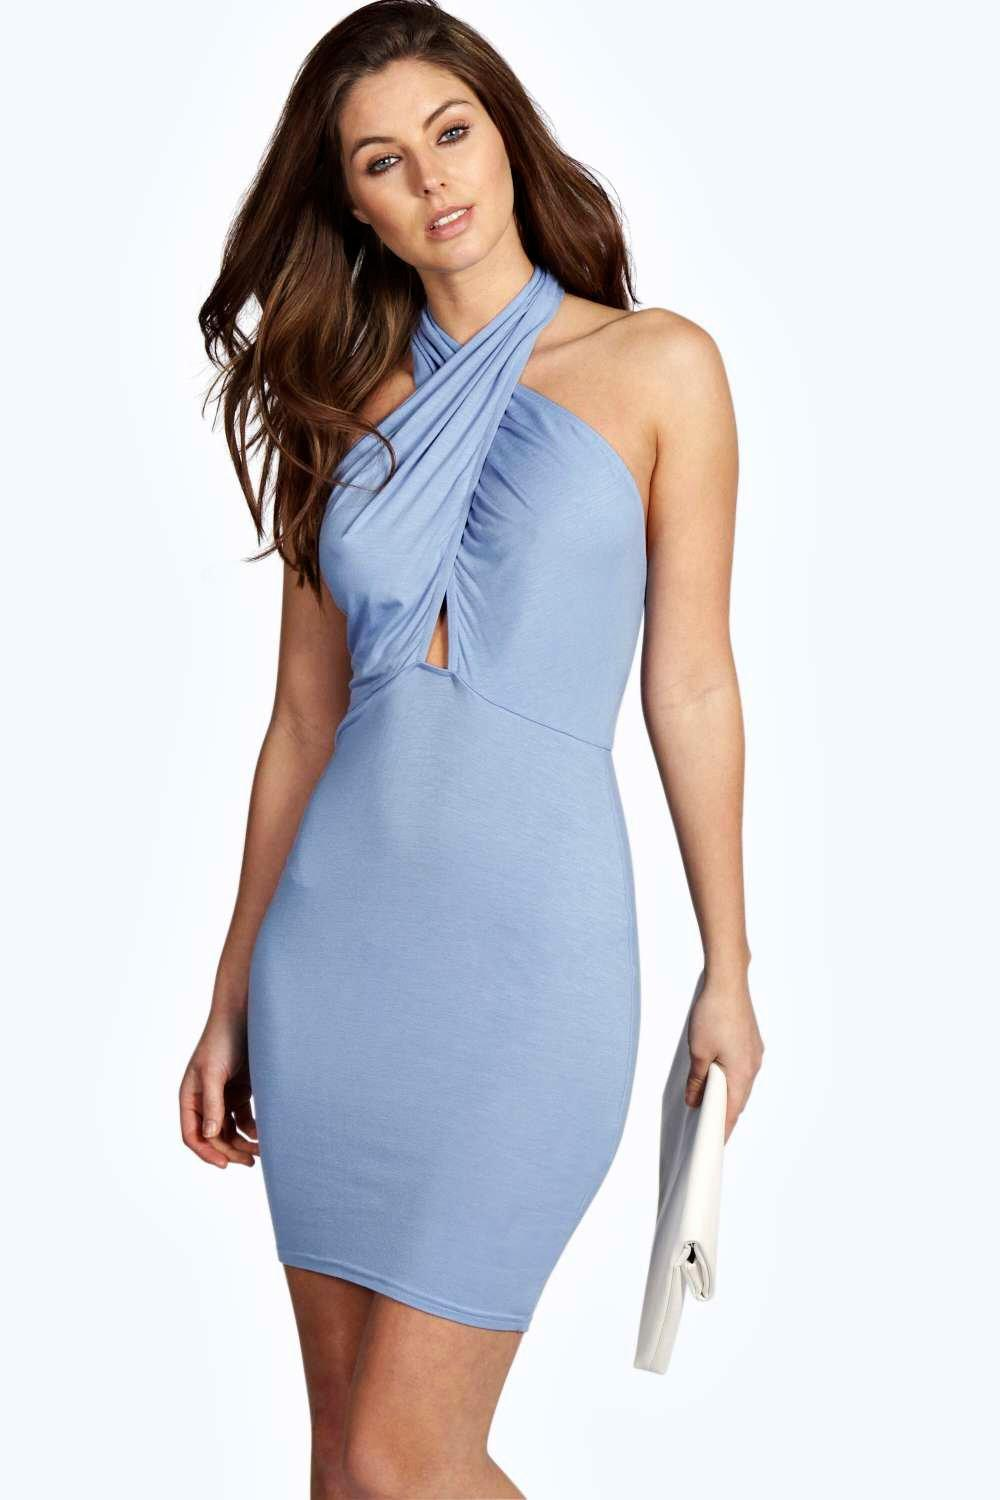 Sleeveless design, halter Neck, off shoulder dress, and you can tie a Berydress Women's Sleeveless Halter Neck A-Line Casual Party Dress. by Berydress. $ - $ $ 23 $ 34 90 Prime. FREE Shipping on eligible orders. Some sizes/colors are Prime eligible. out of 5 stars